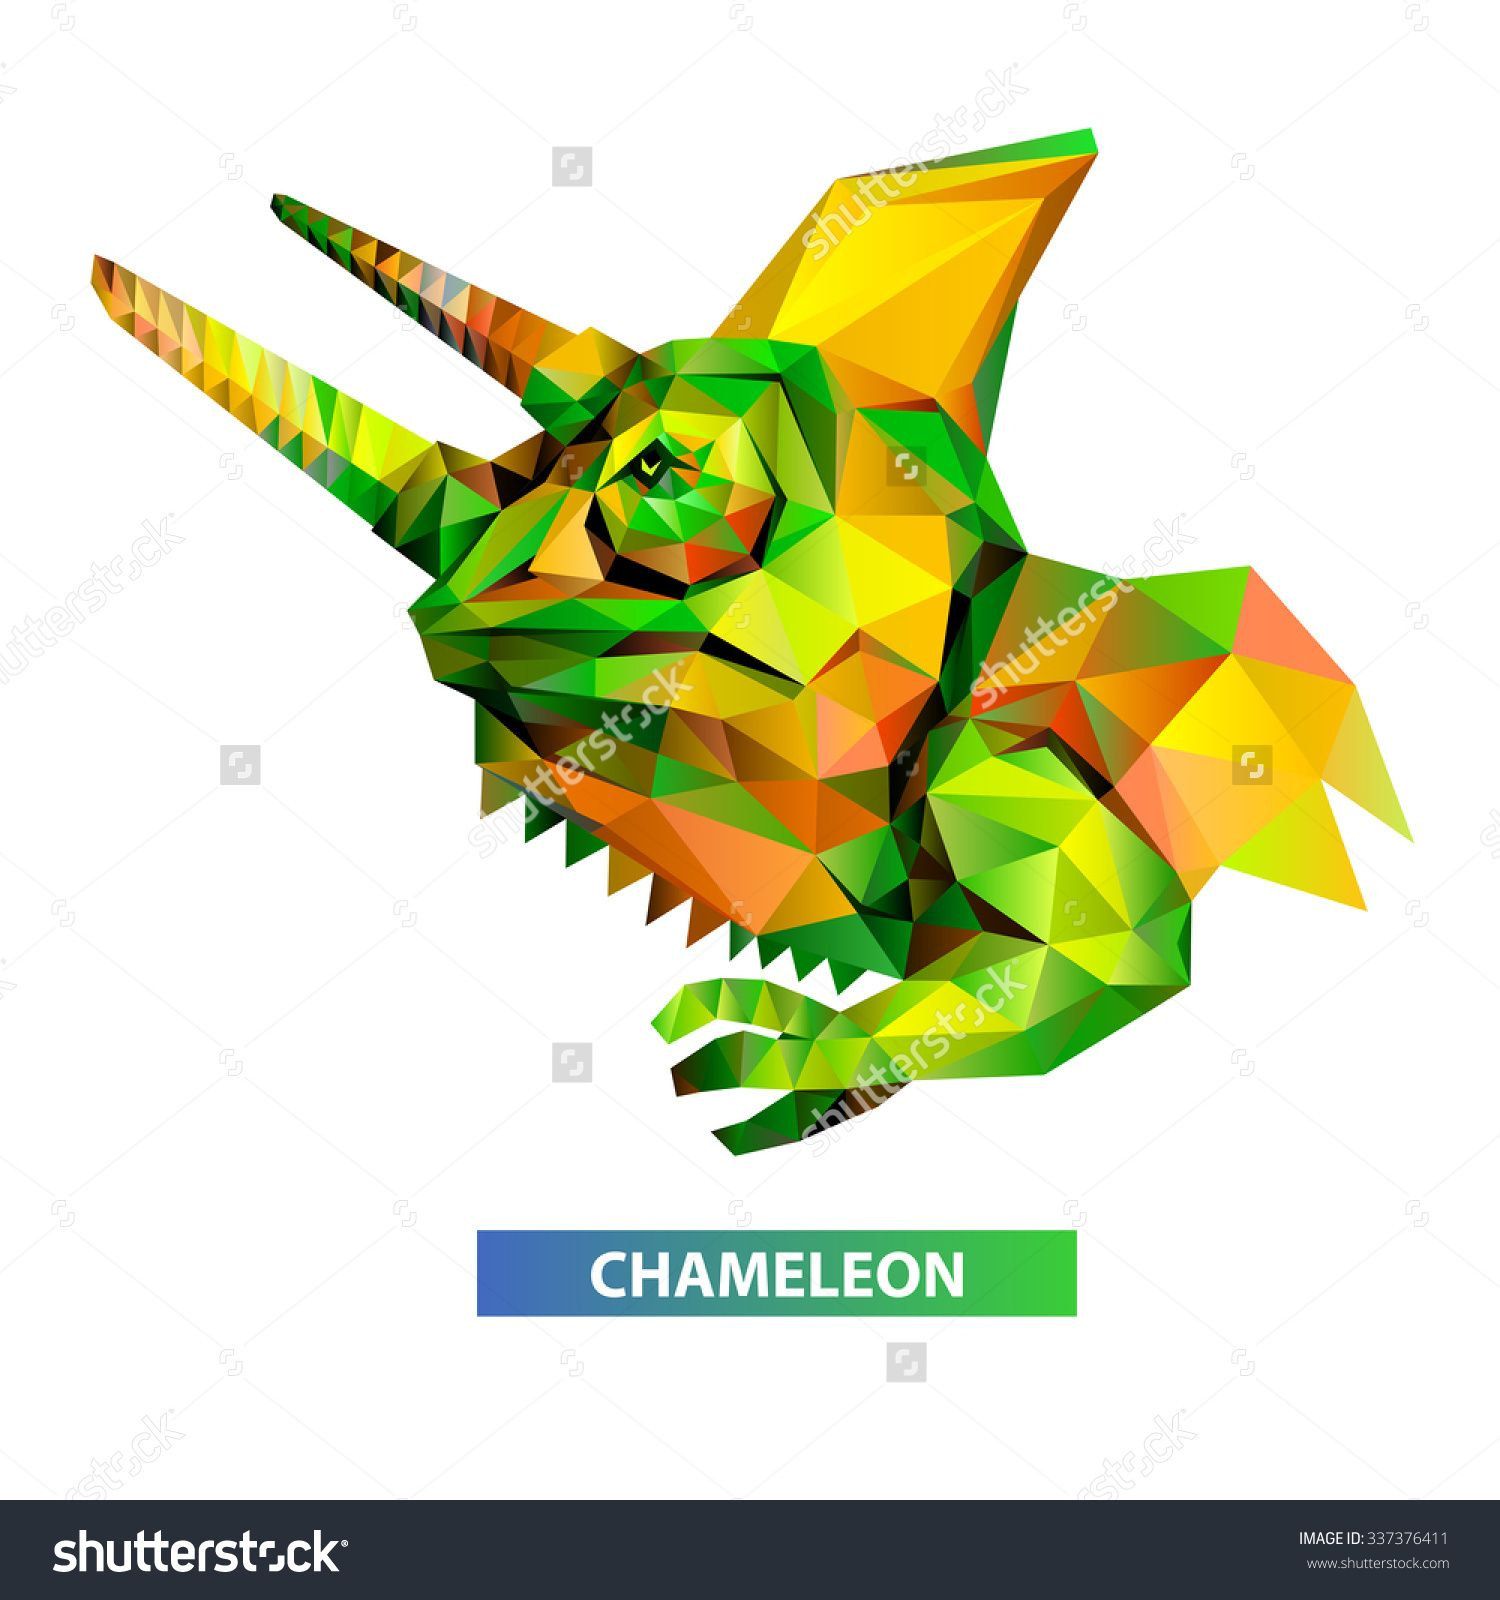 Vector - chameleon head geometric (illustration of a many triangles)